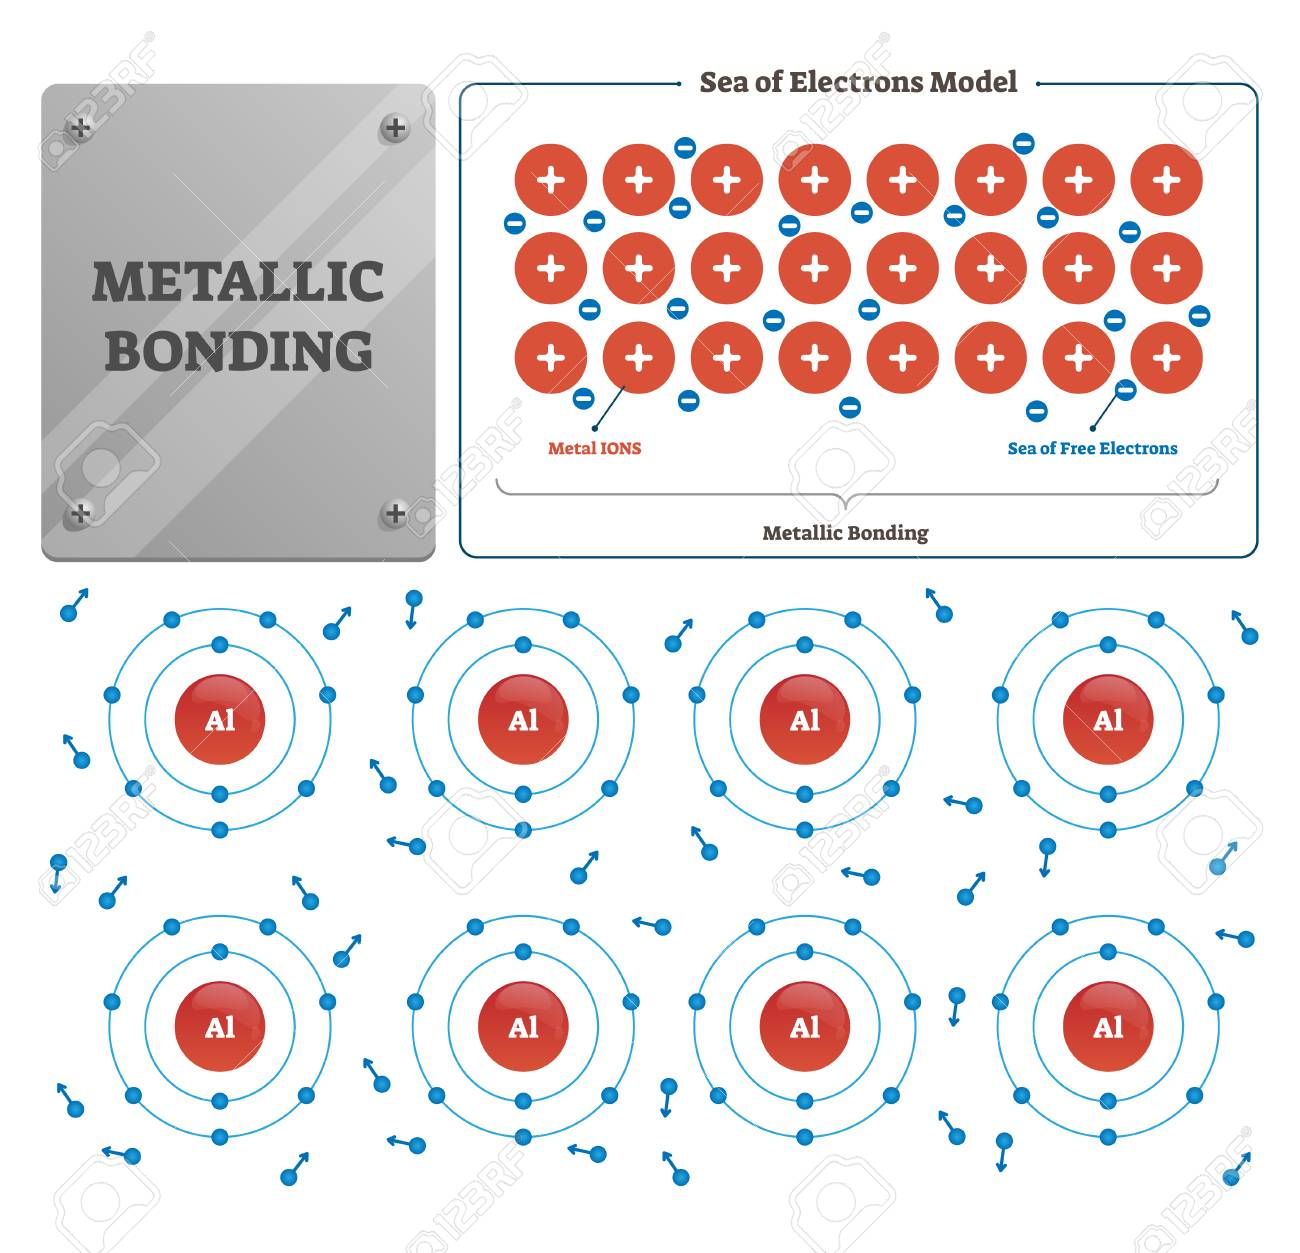 Metallic bonding vector illustration. Labeled metal and free electron sea. Process diagram that rises from electrostatic attractive force between conduction electrons and positively charged metal ions - 127729410